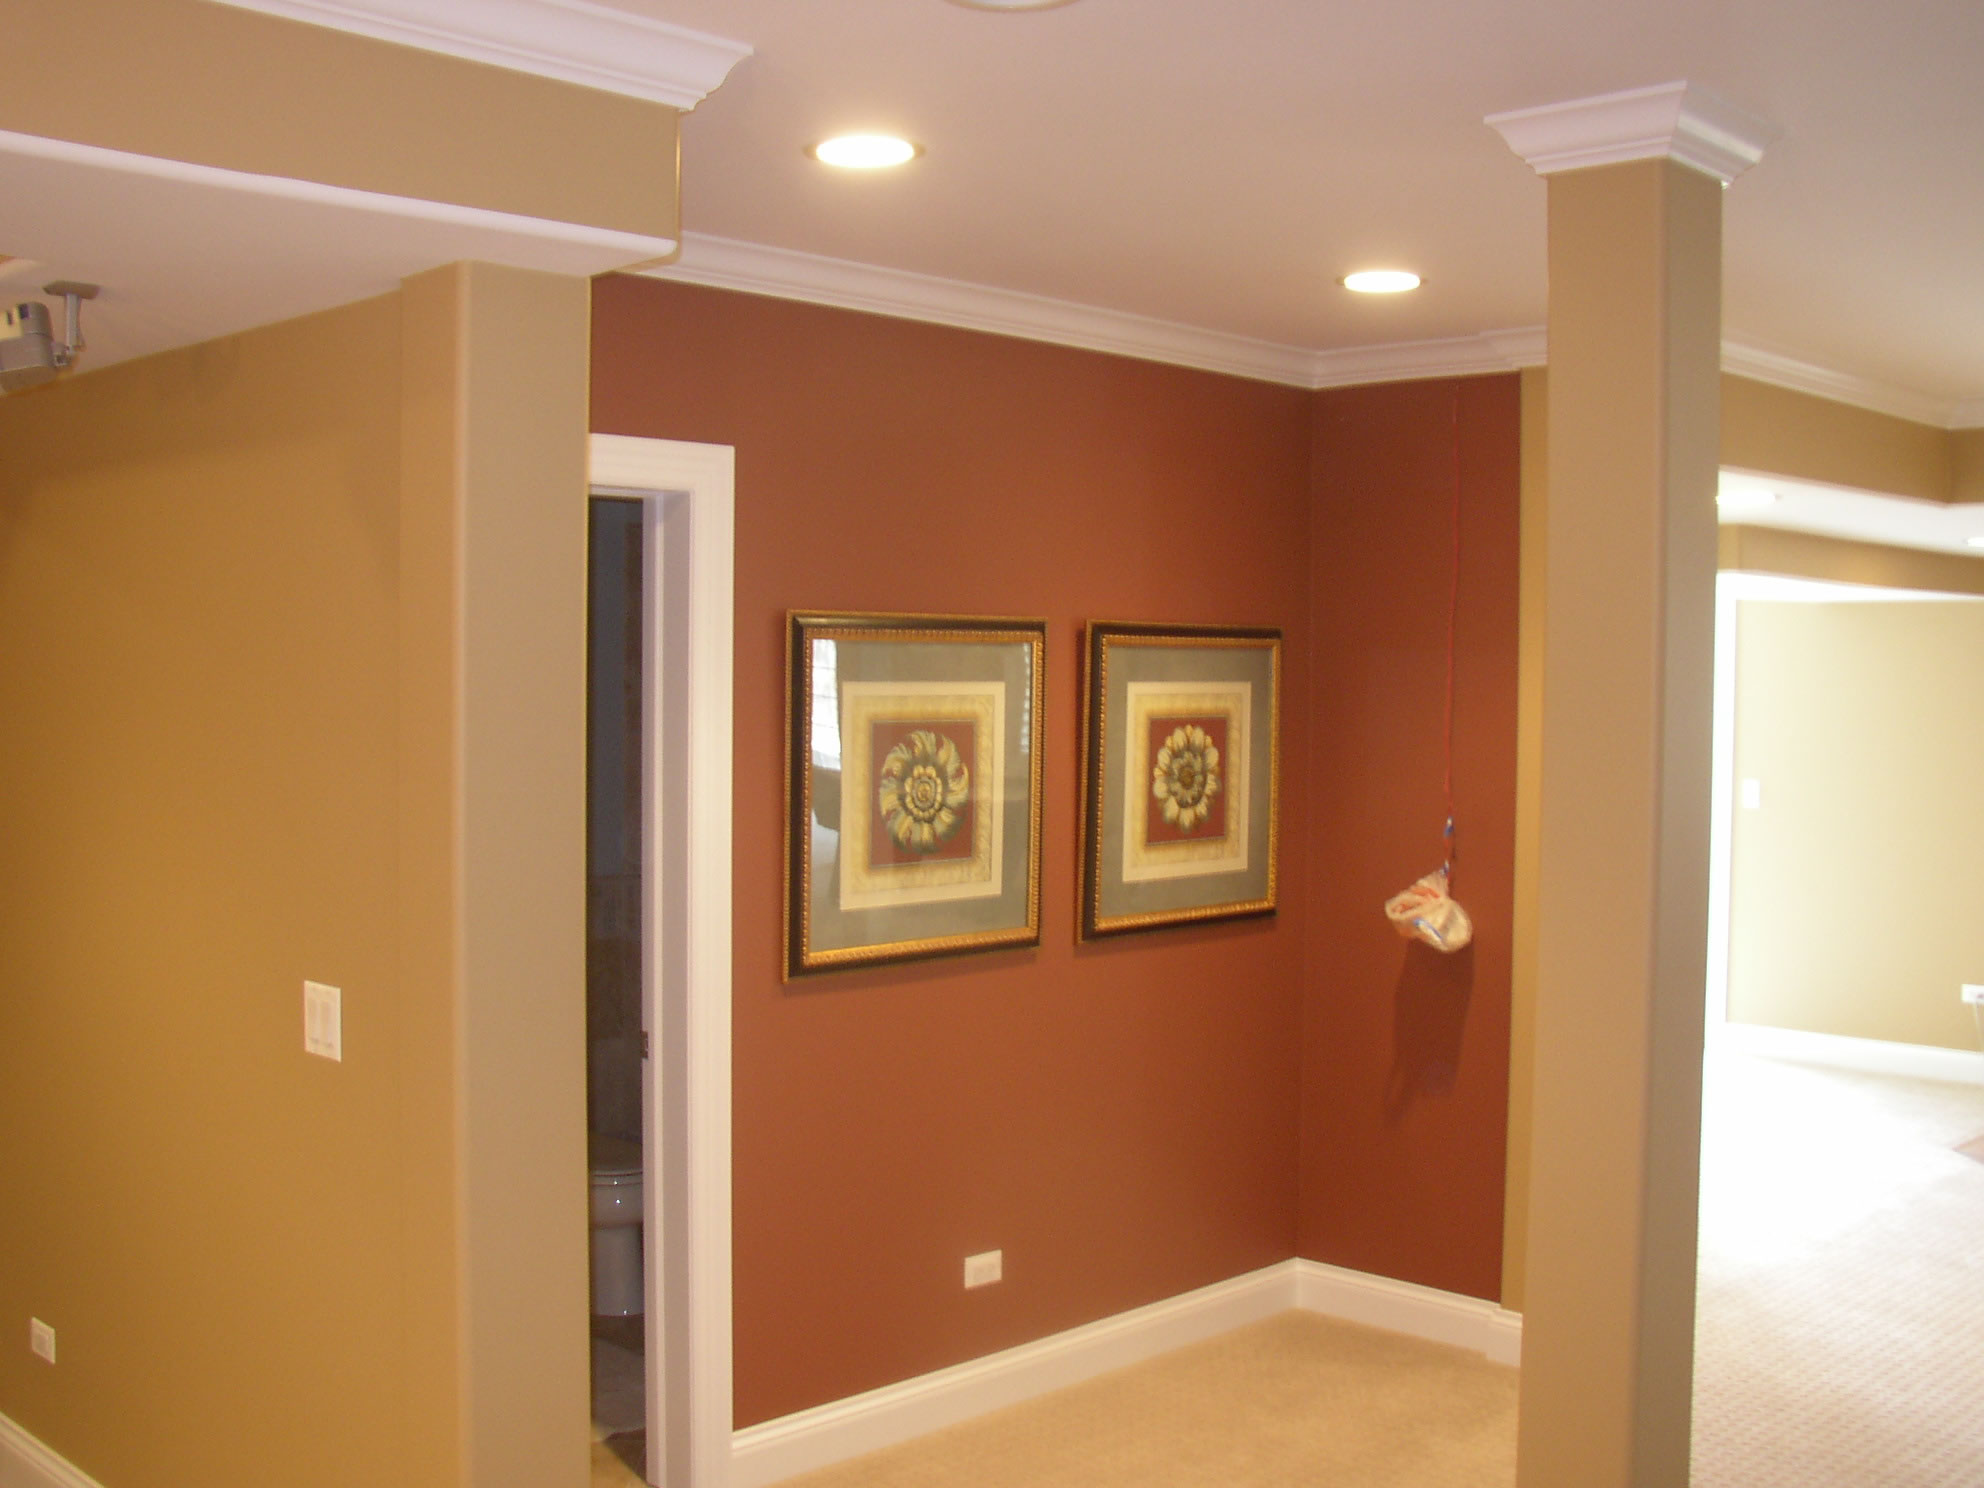 Chicago barrington algonquin interior and exterior - Interior paint ideas for small rooms ...